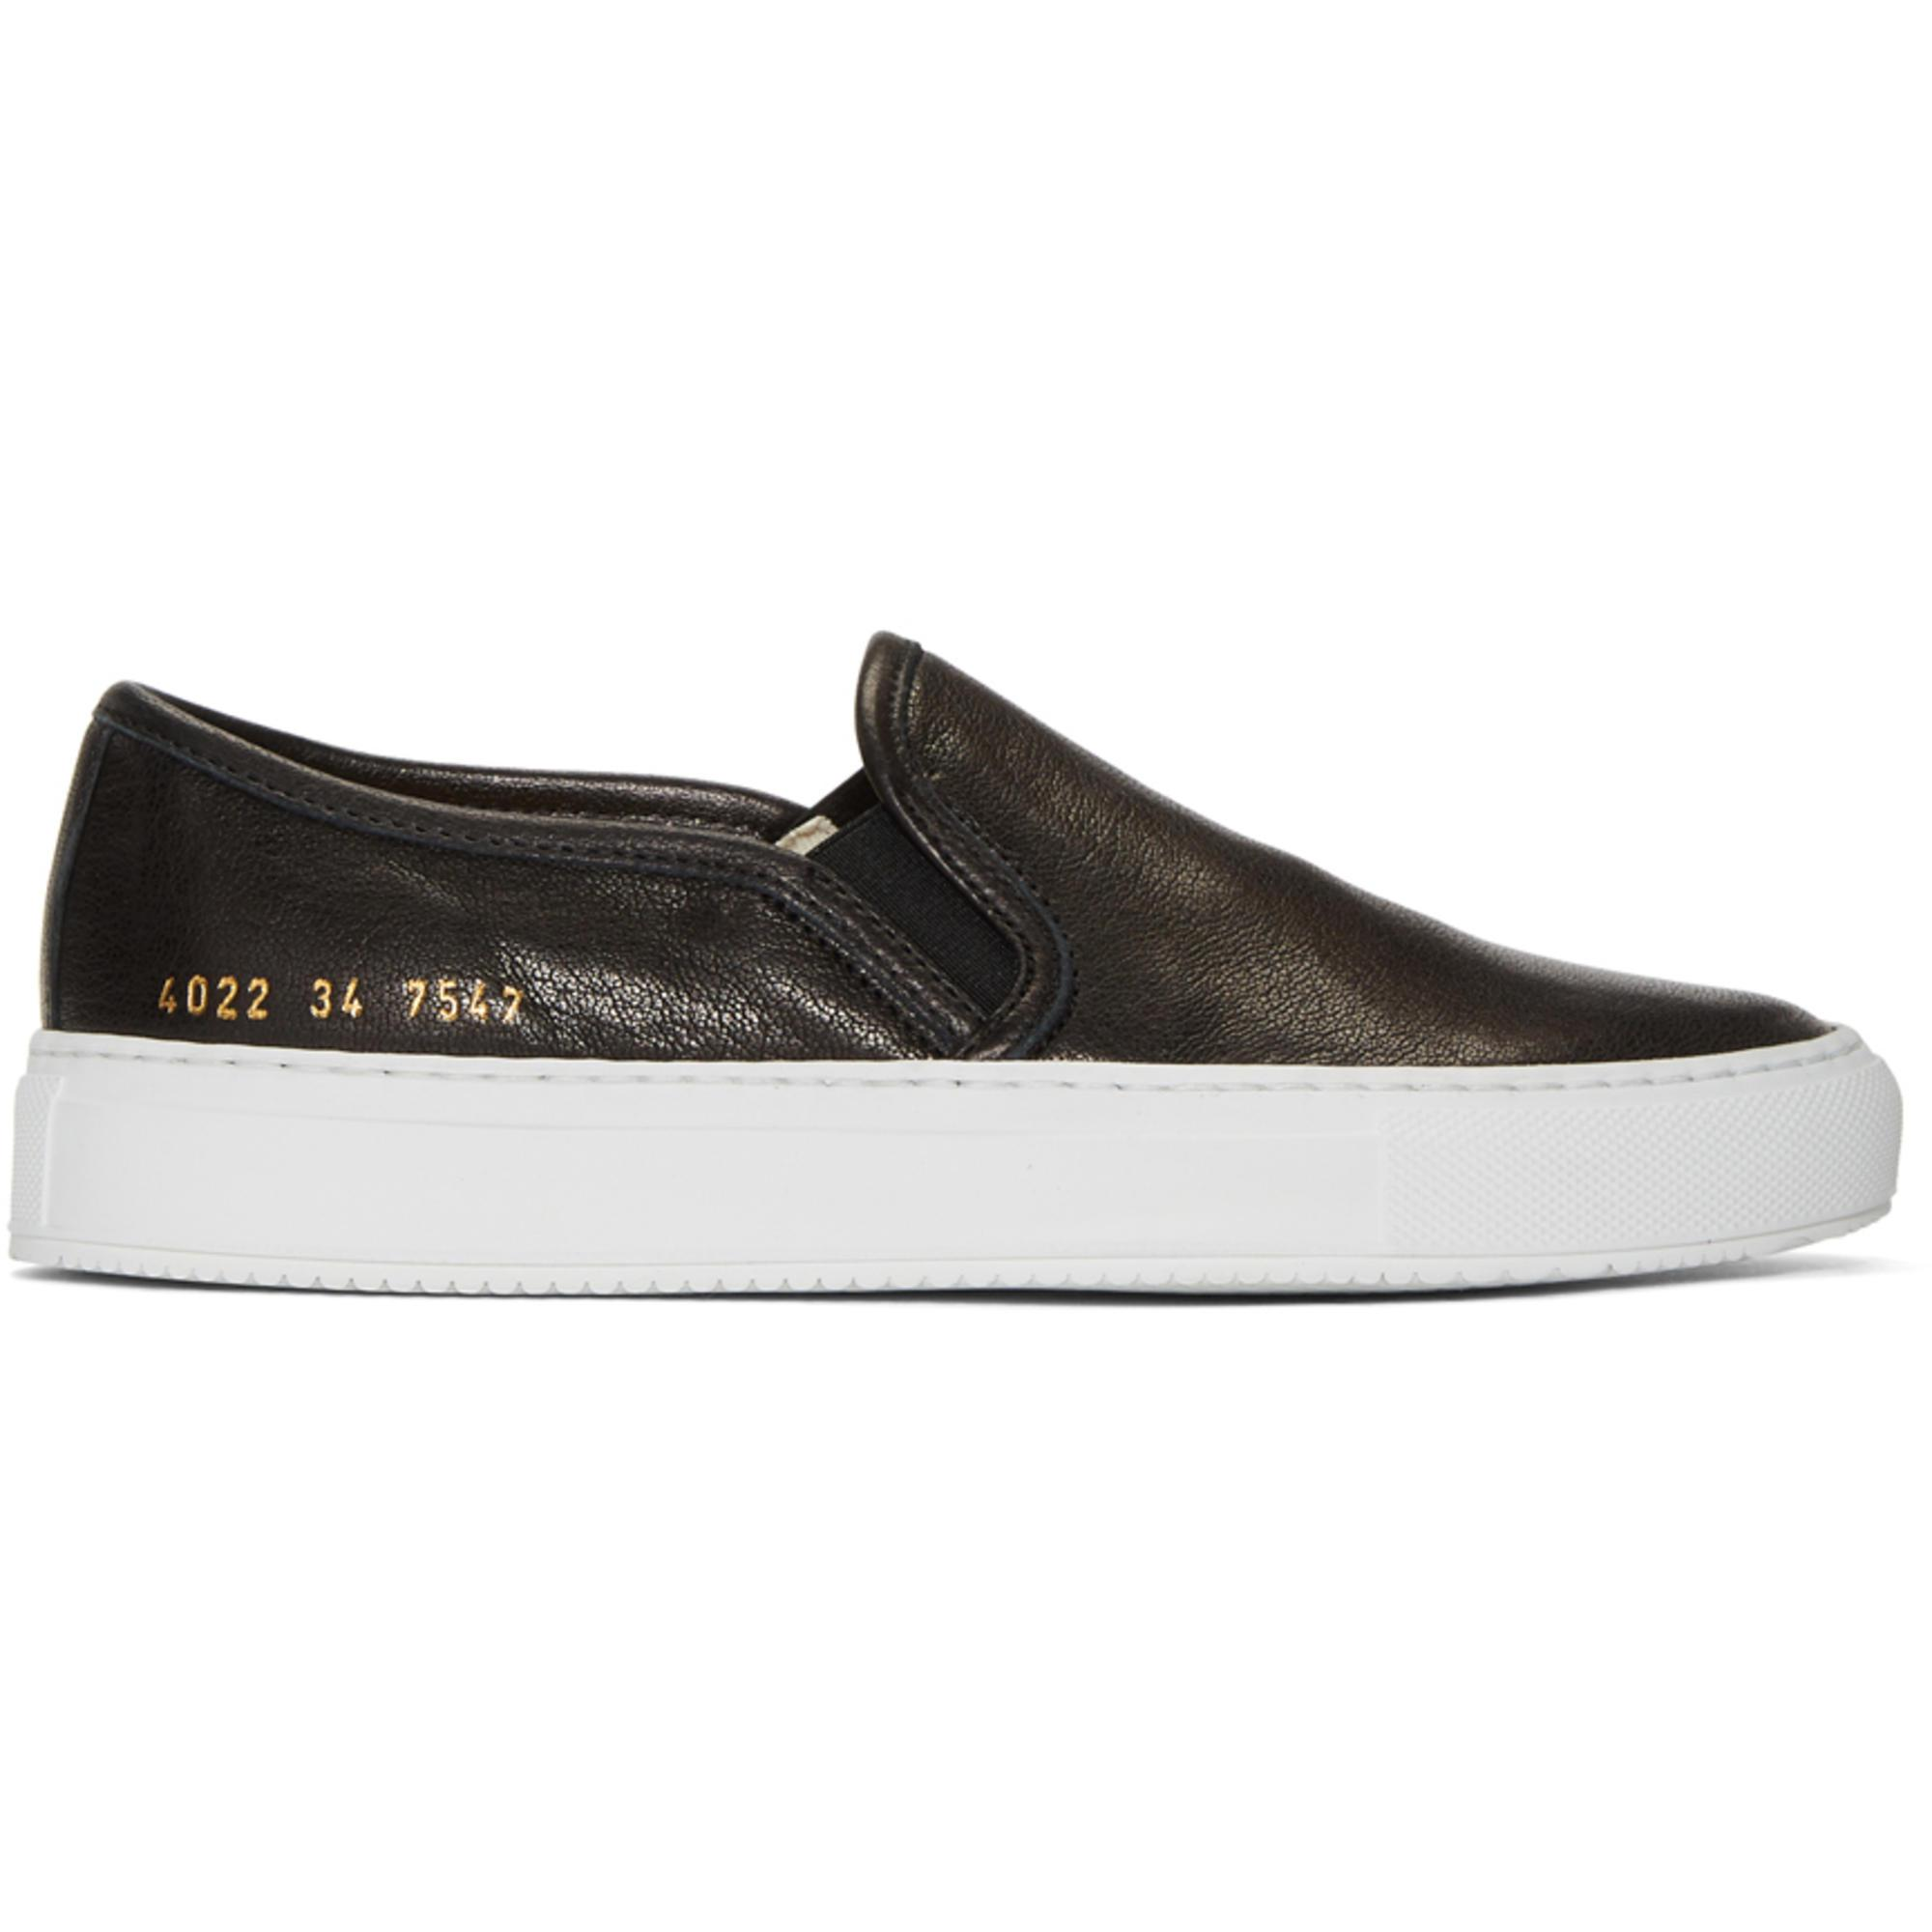 Cheap Price Factory Outlet SSENSE Exclusive Black Tournament Slip-On Sneakers Common Projects Outlet Release Dates Buy Cheap Footaction ooSZQjU1u